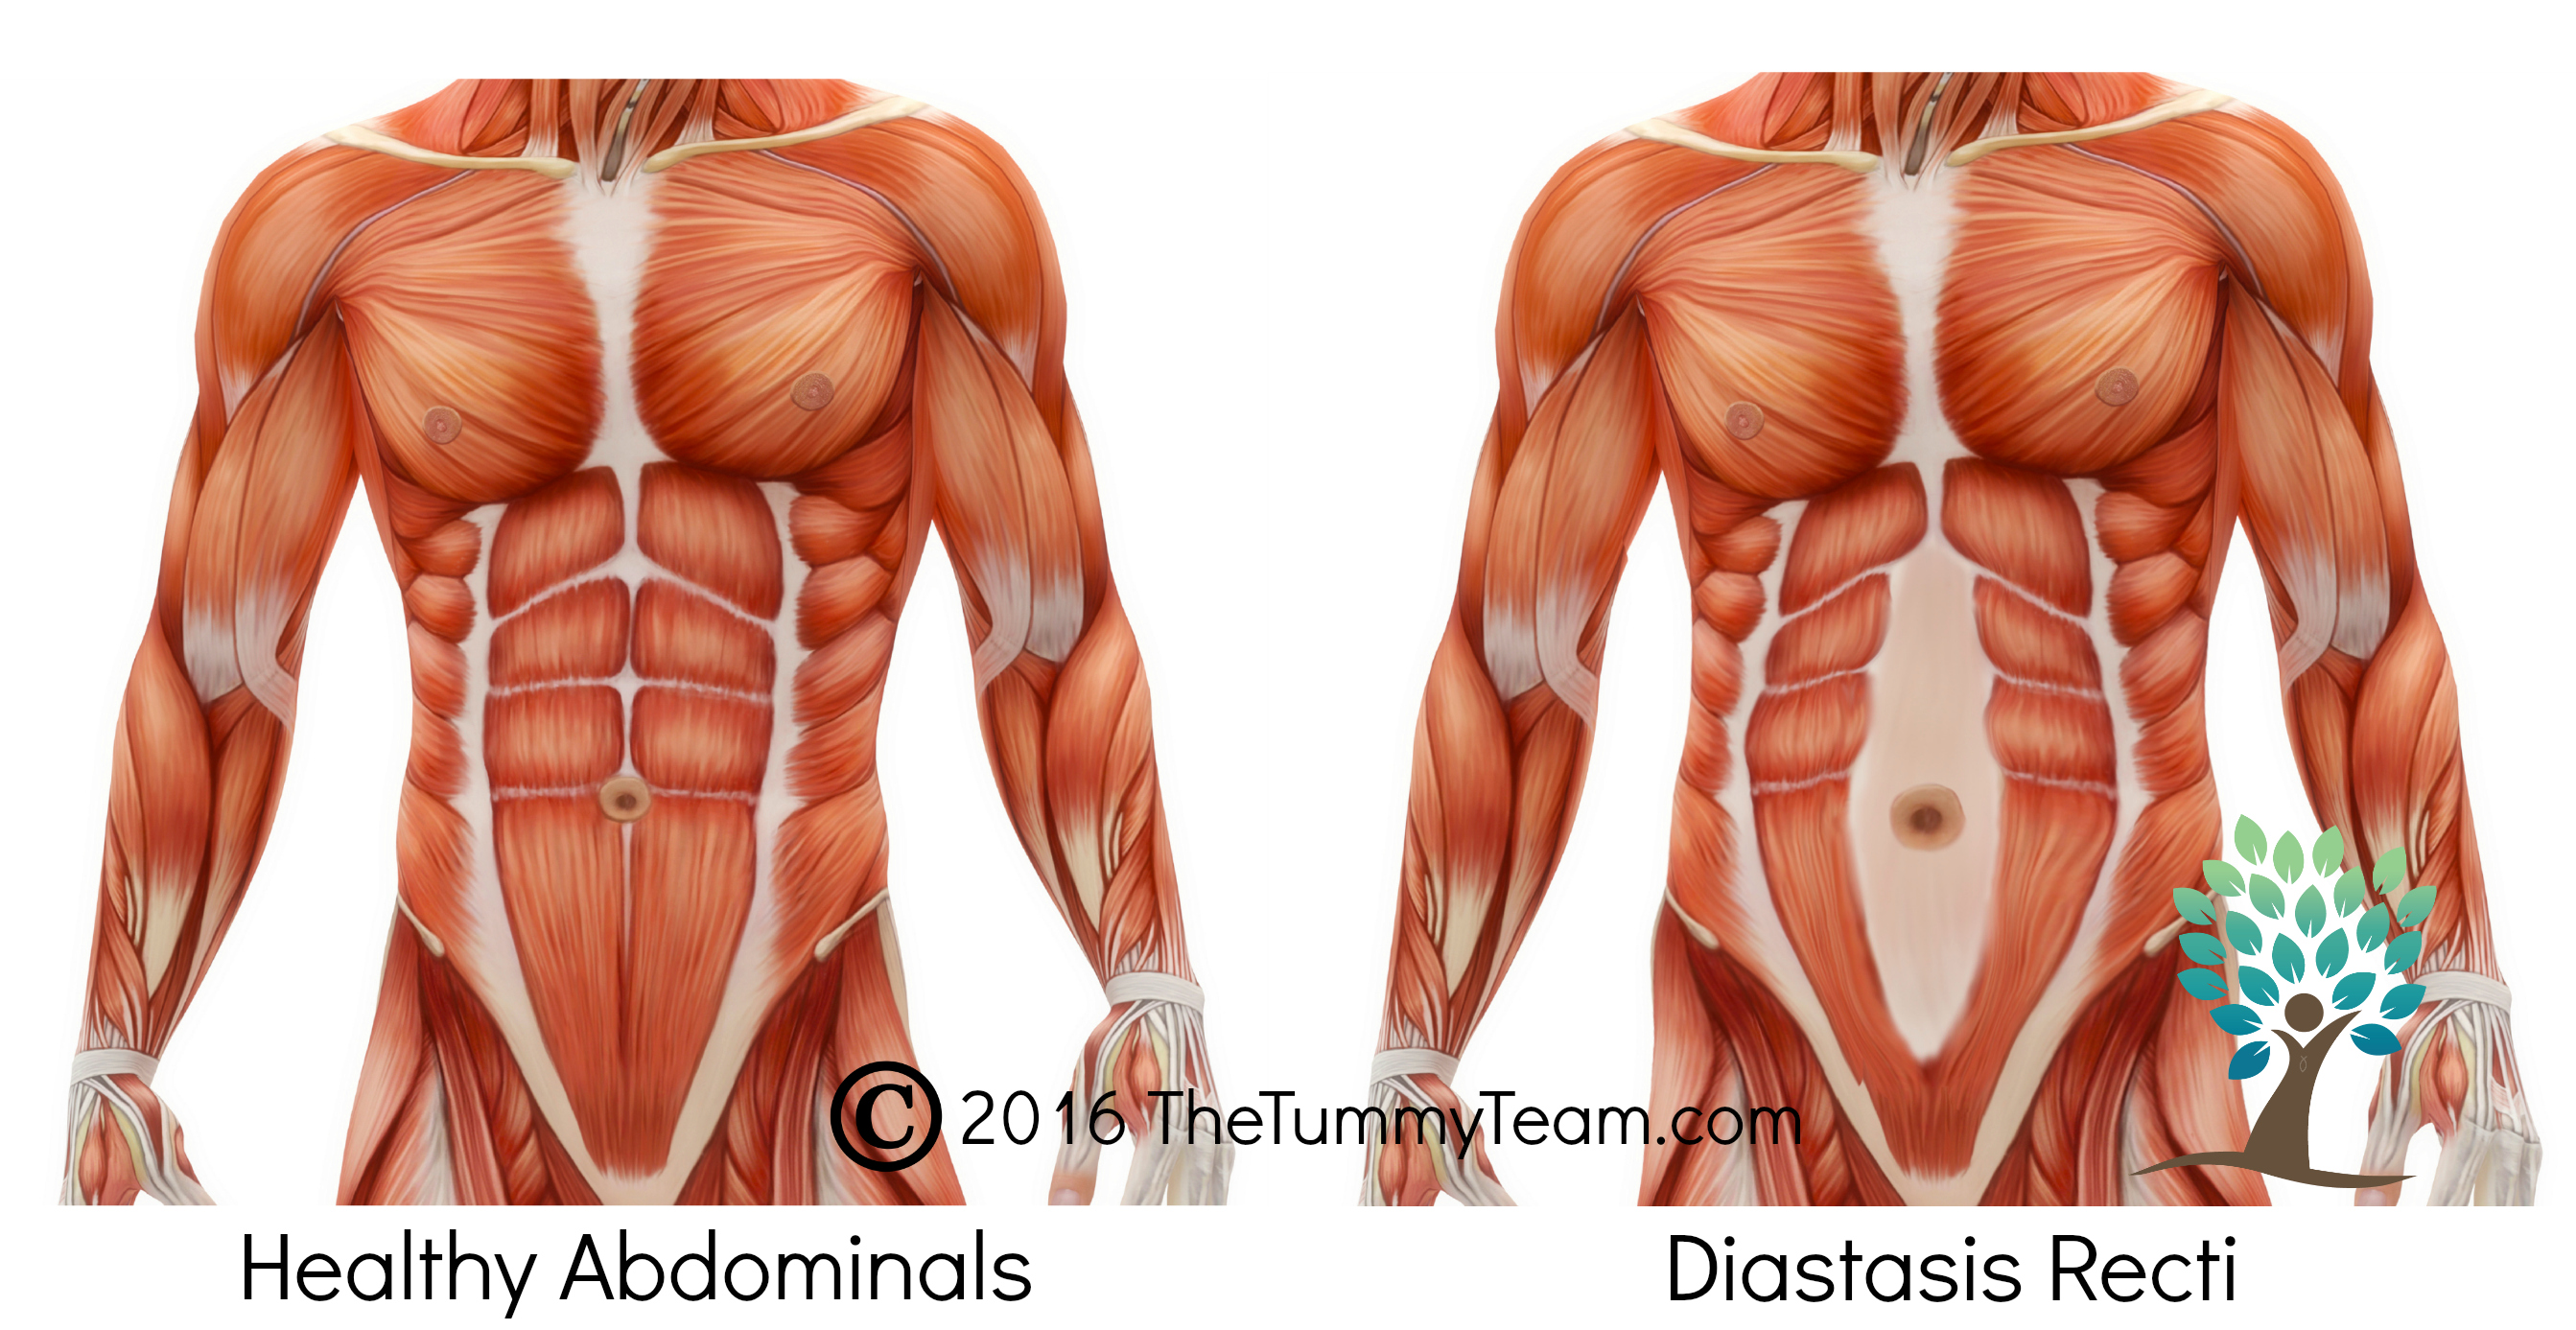 Is There Hope For My Diastasis Recti The Tummy Team Online The Tummy Team